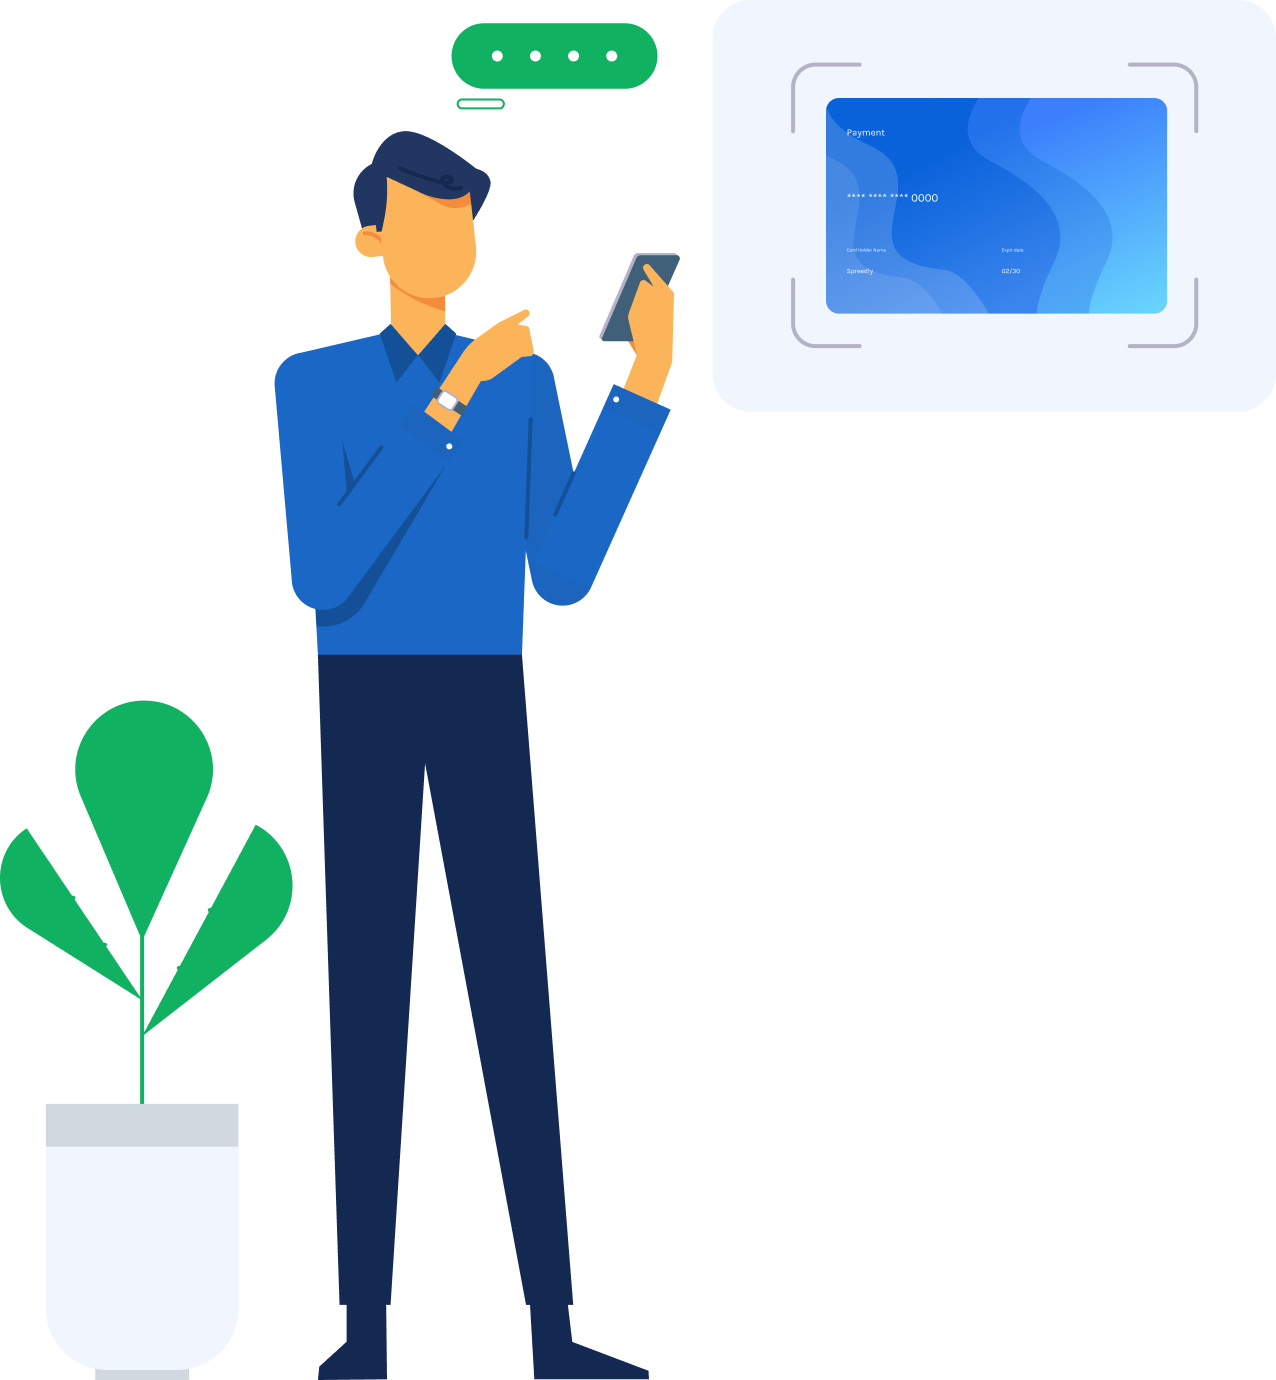 a person standing by a houseplant using a cell phone to make payments